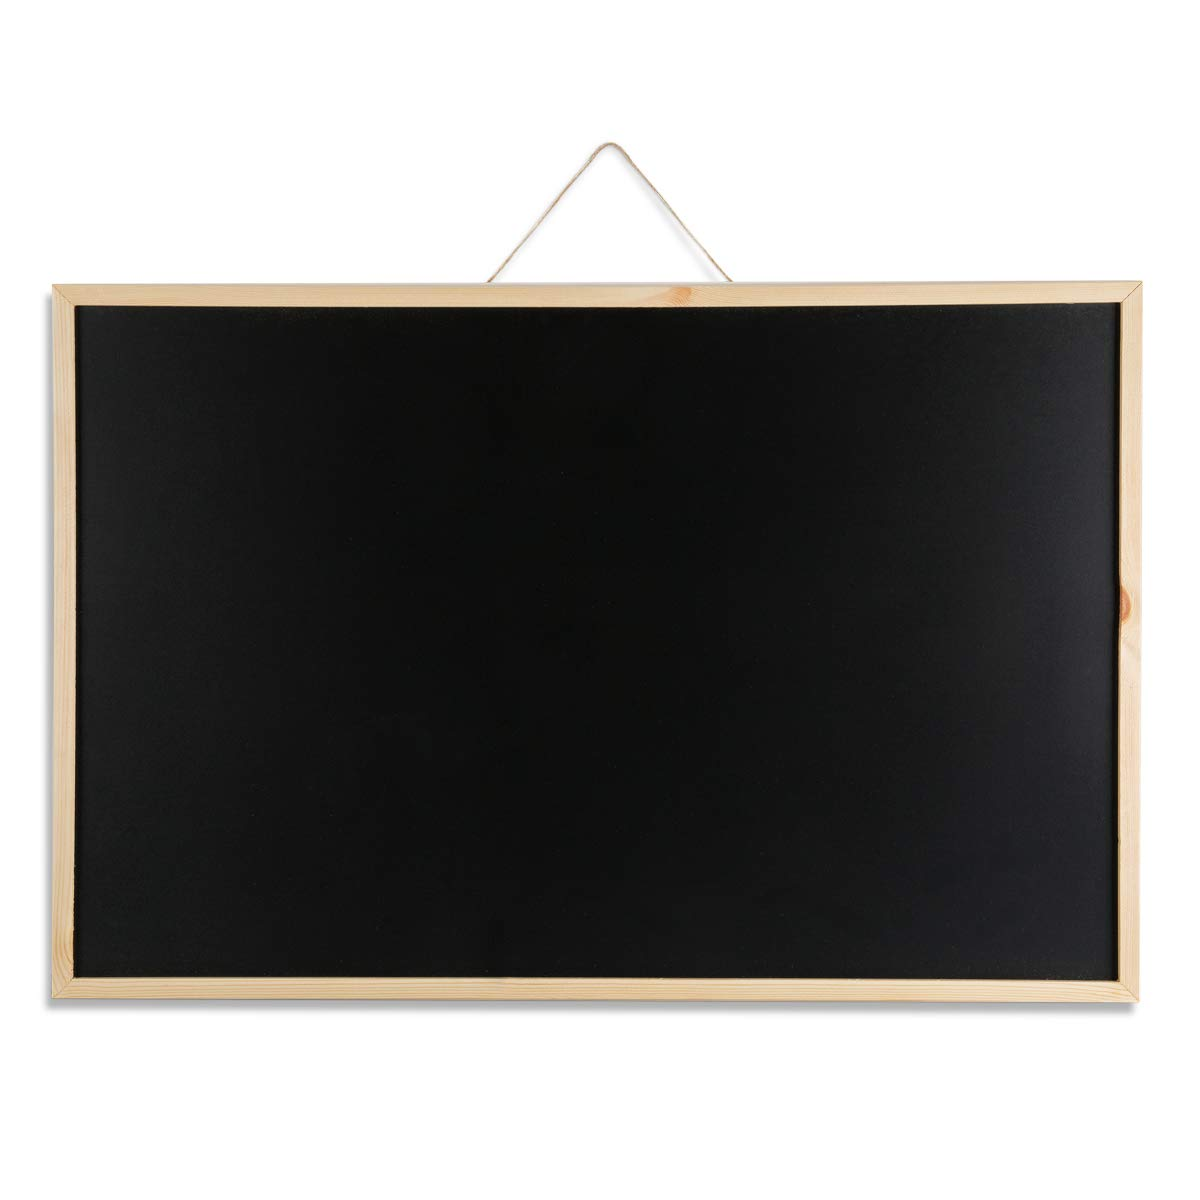 Marble Field 24''x36'' Wall Mounted Chalkboard Blackboard Bulletin Board for Home, School and Office, Wood Frame Chalkboard with 1 Eraser